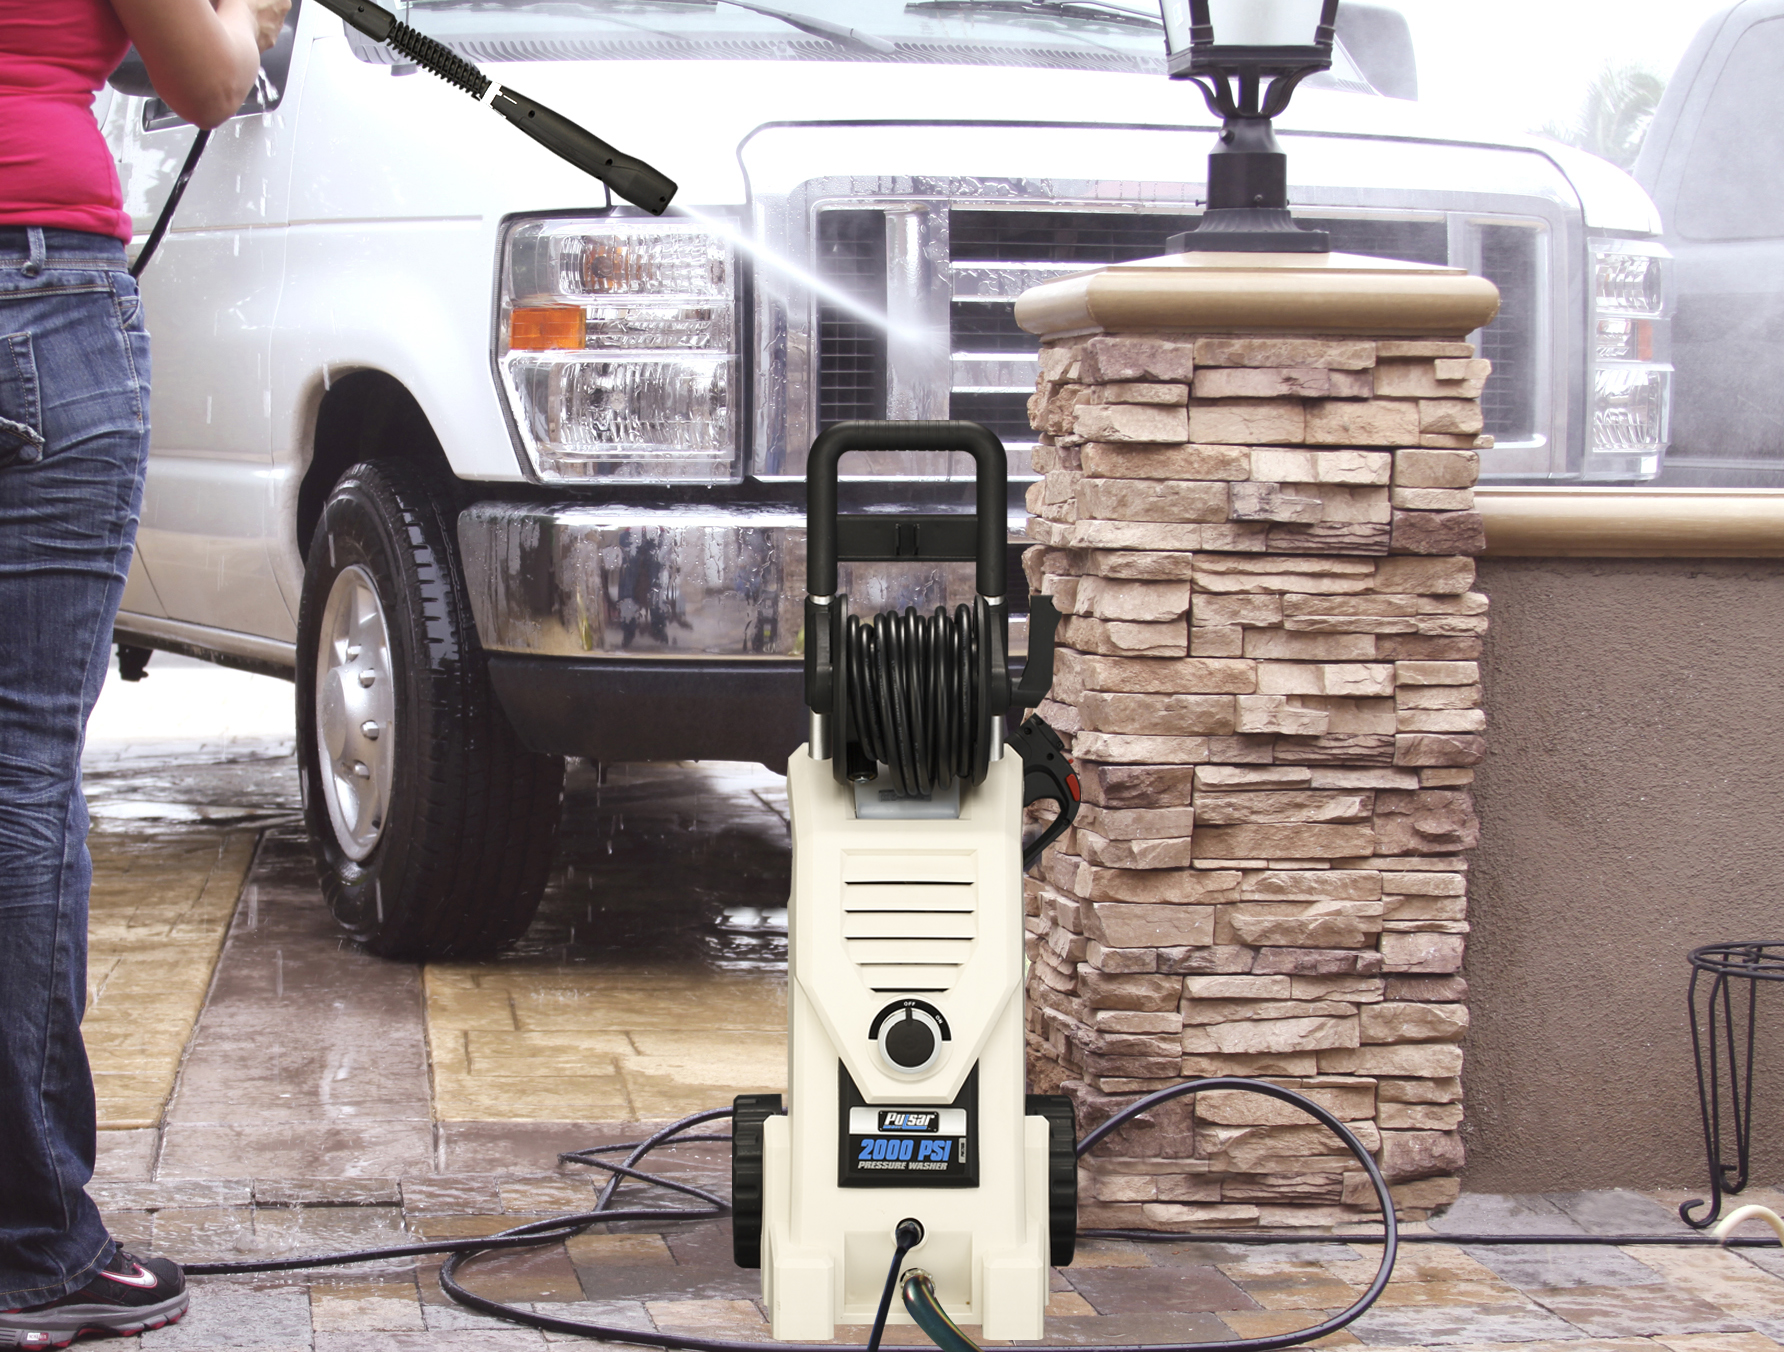 2000 psi electric pressure washer in use